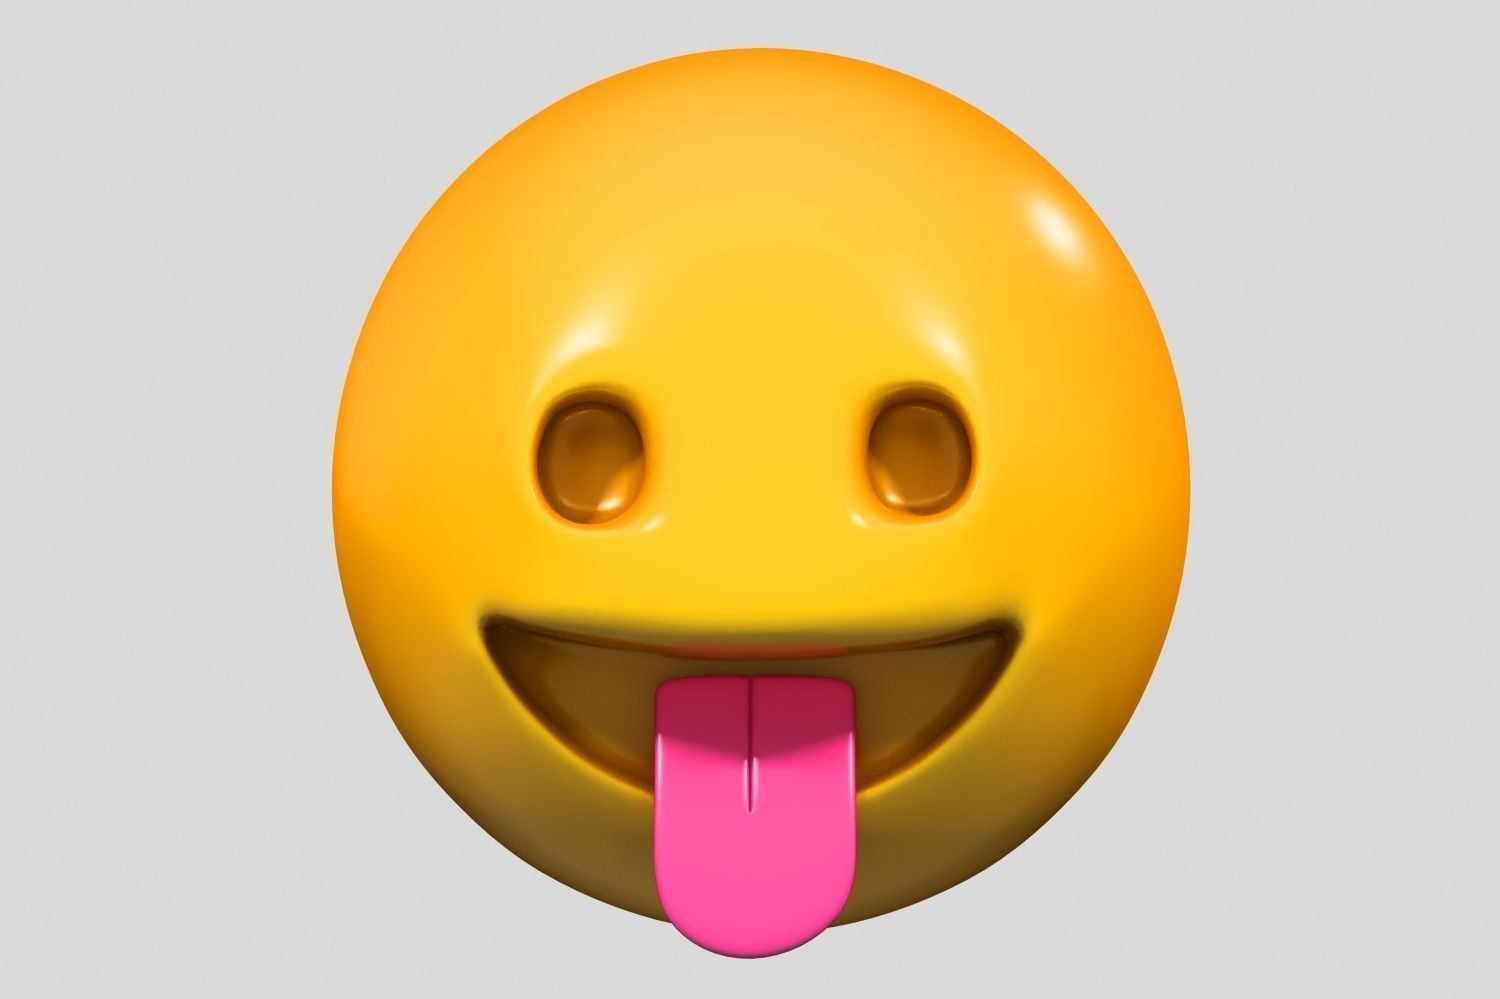 Emoji Face with Tongue